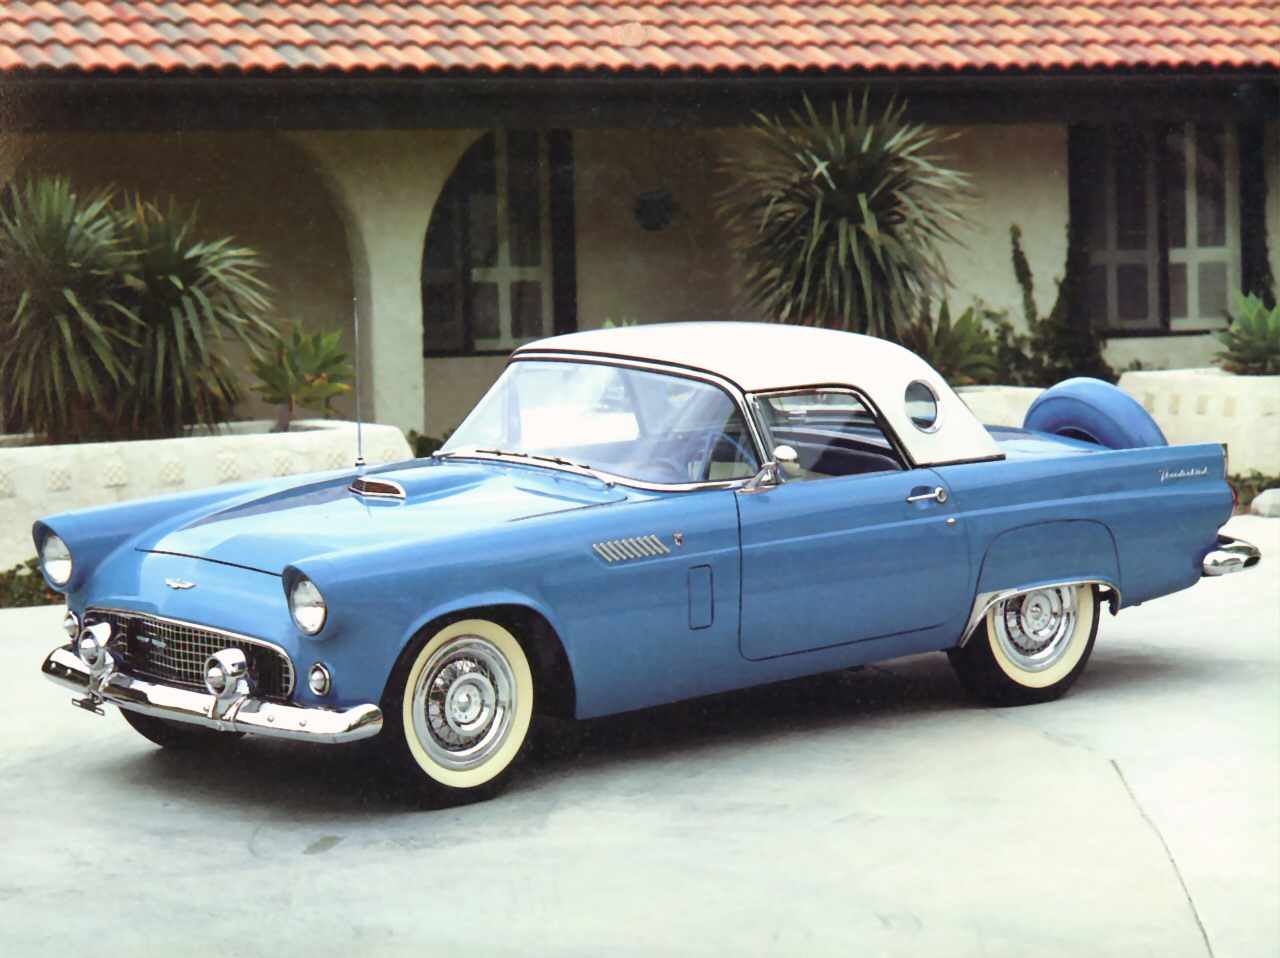 1956 Ford Thunderbird Roadster With Port Hole Hardtop Blue Fvl Next Cars Wallpaper